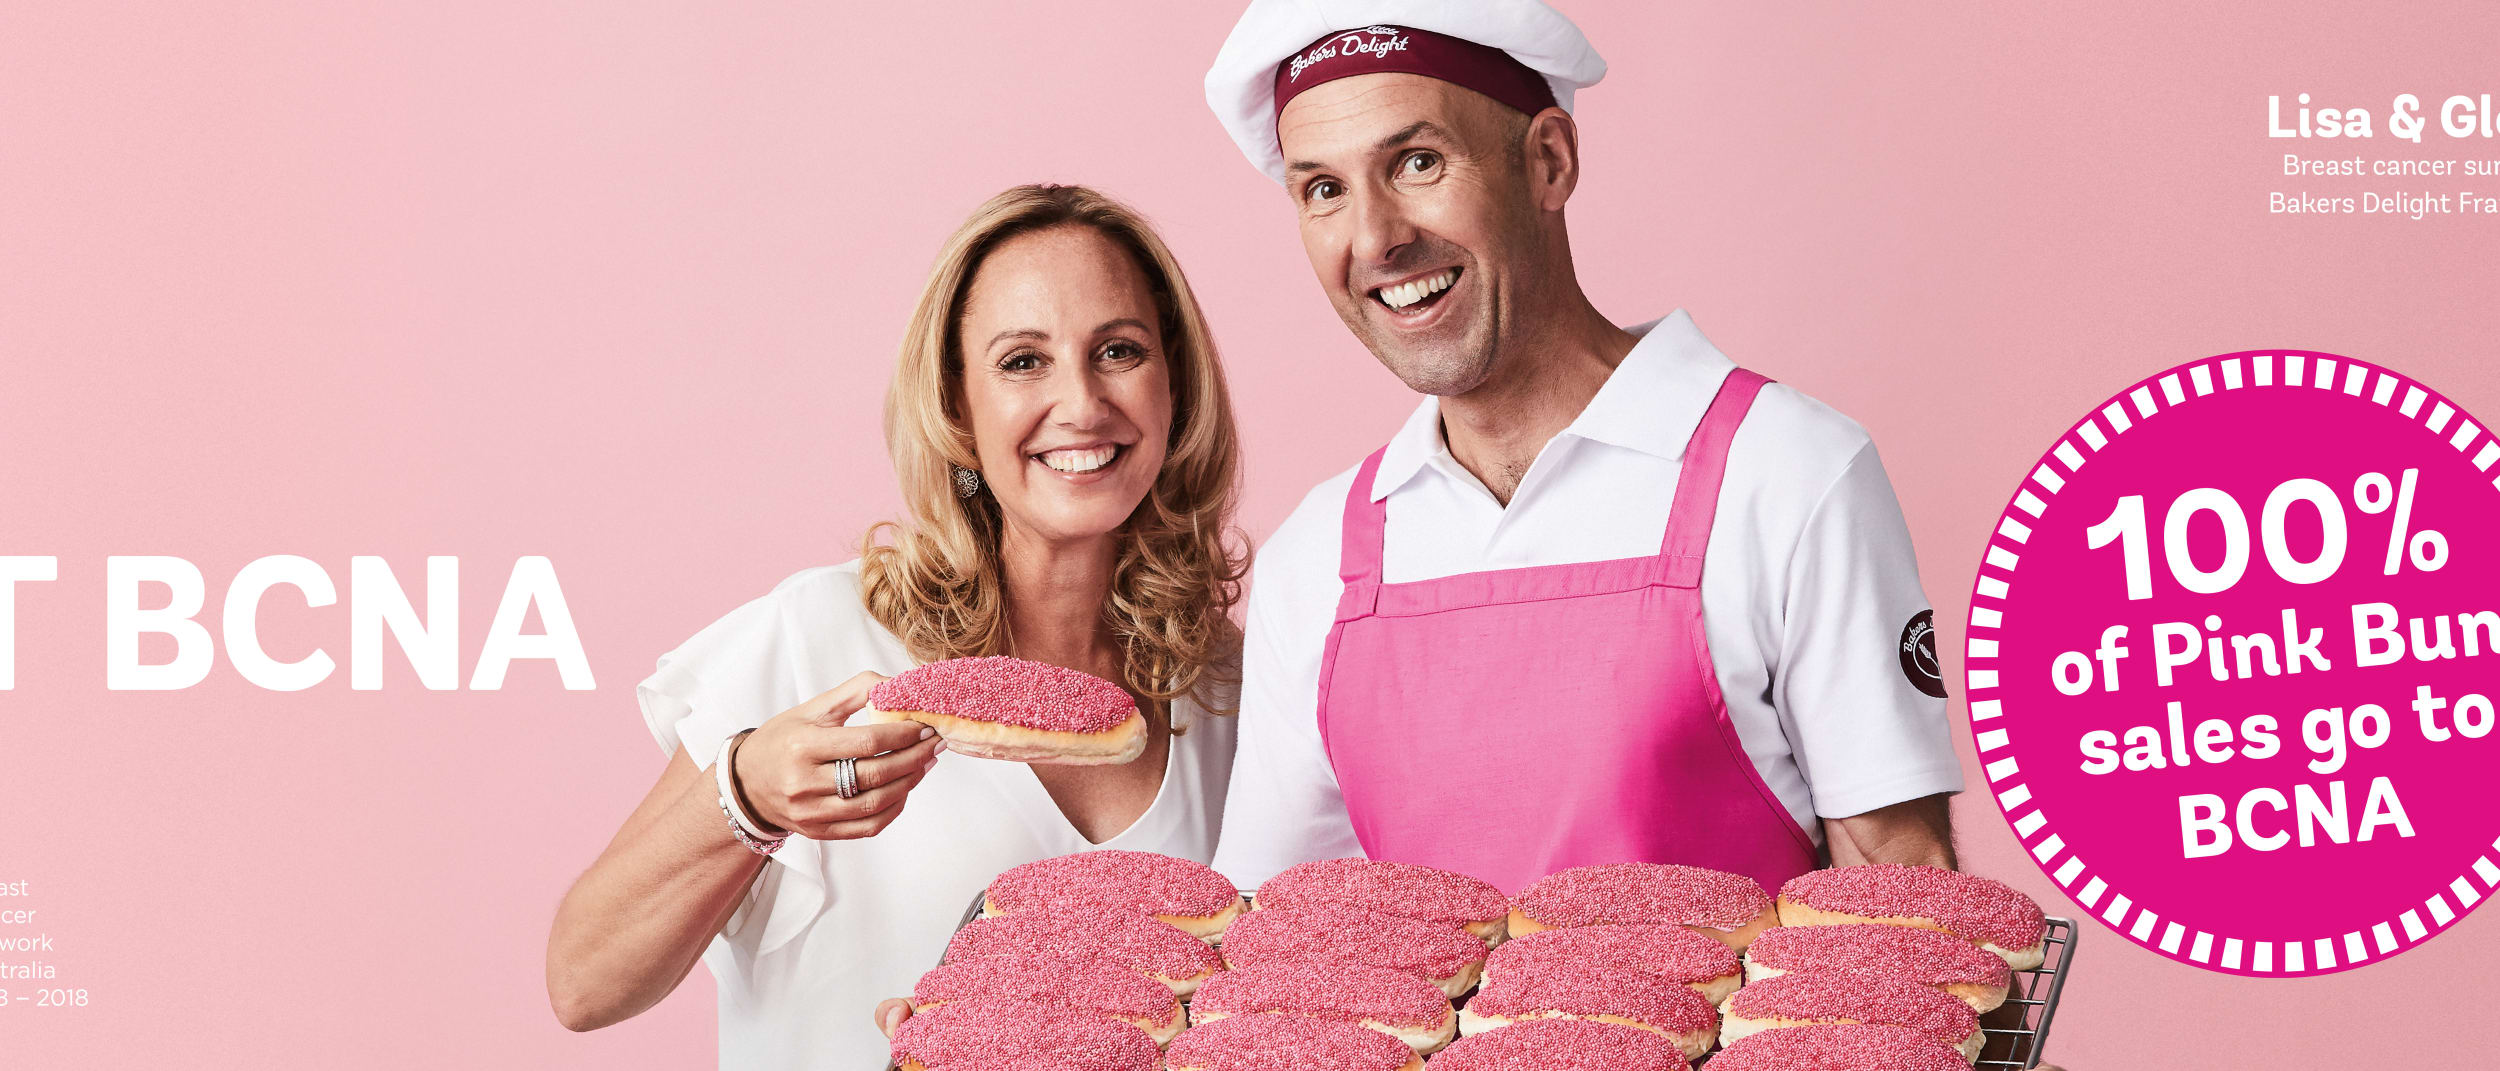 Bakers Delight pink bun campaign